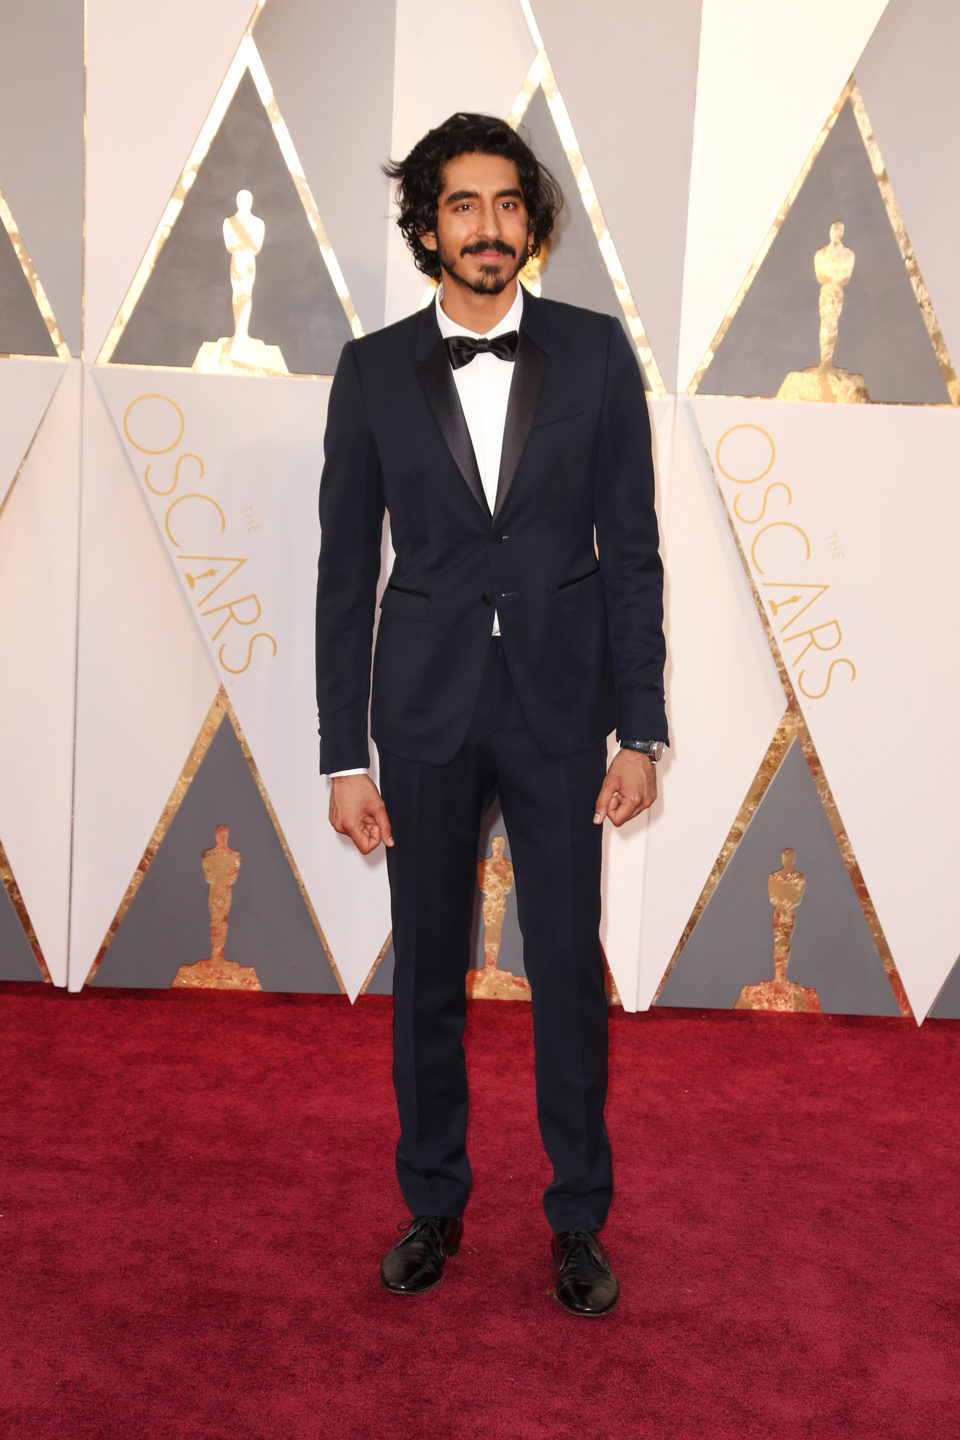 Dev Patel at the Oscars 2016 red carpet